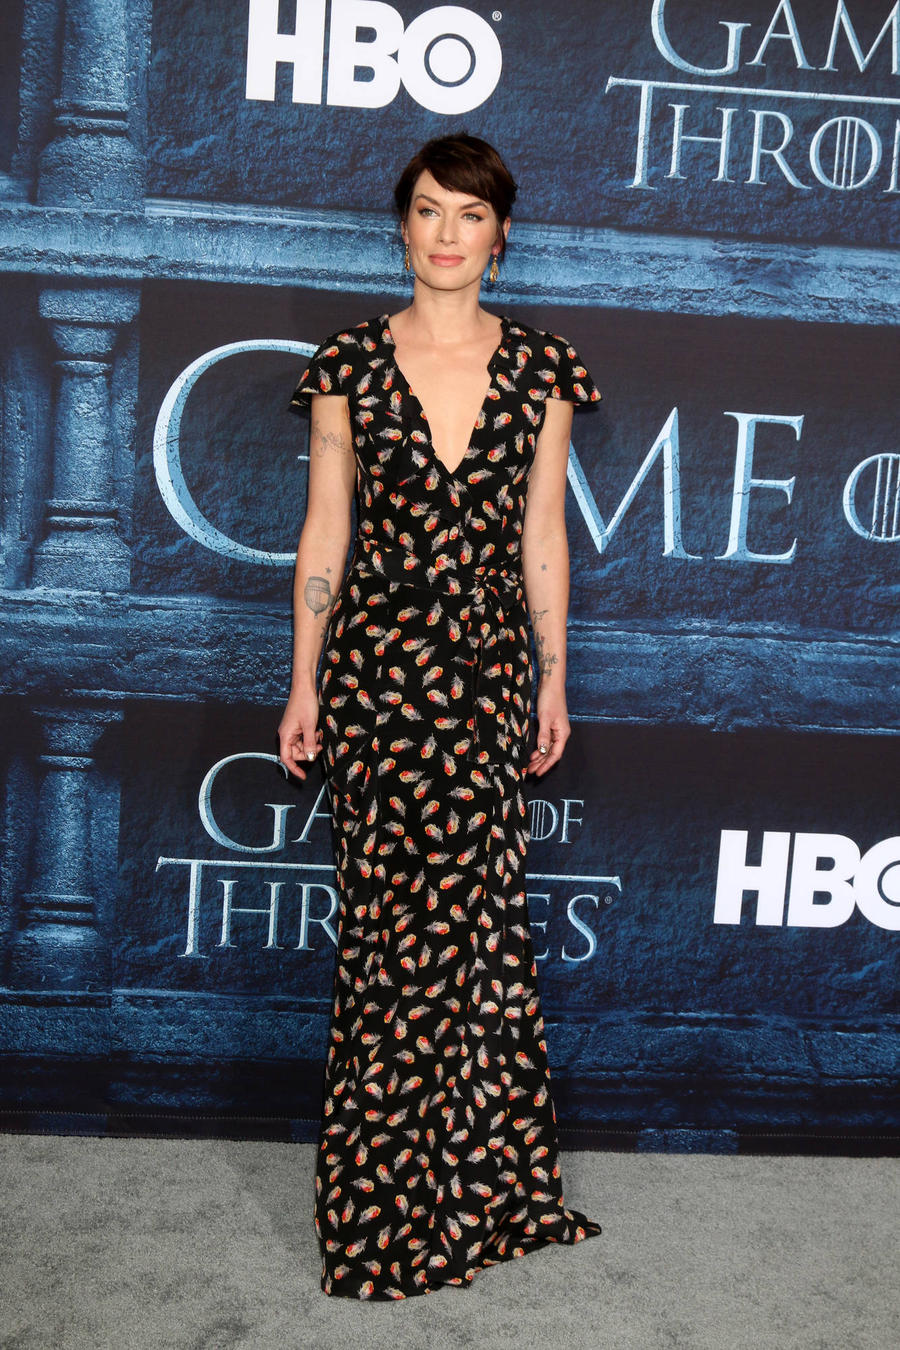 Lena Headey Shares Awkward Breastfeeding Encounter With Game Of Thrones Fan